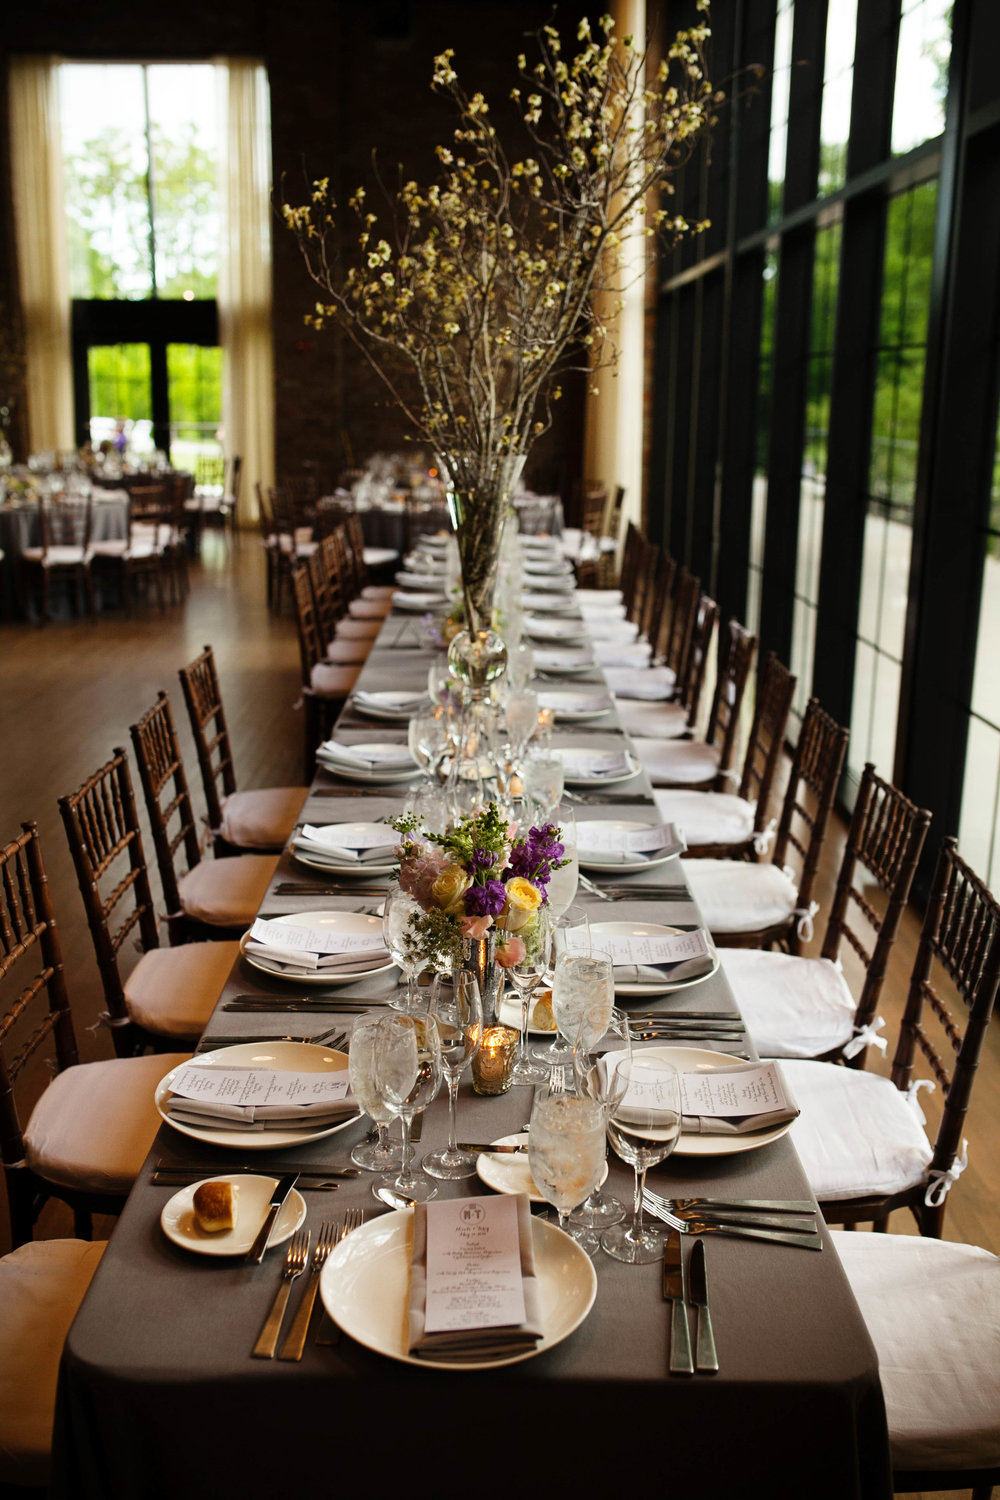 Ashley Douglass Events wedding at Roundhouse Beacon with Bruce Plotkin Photography.